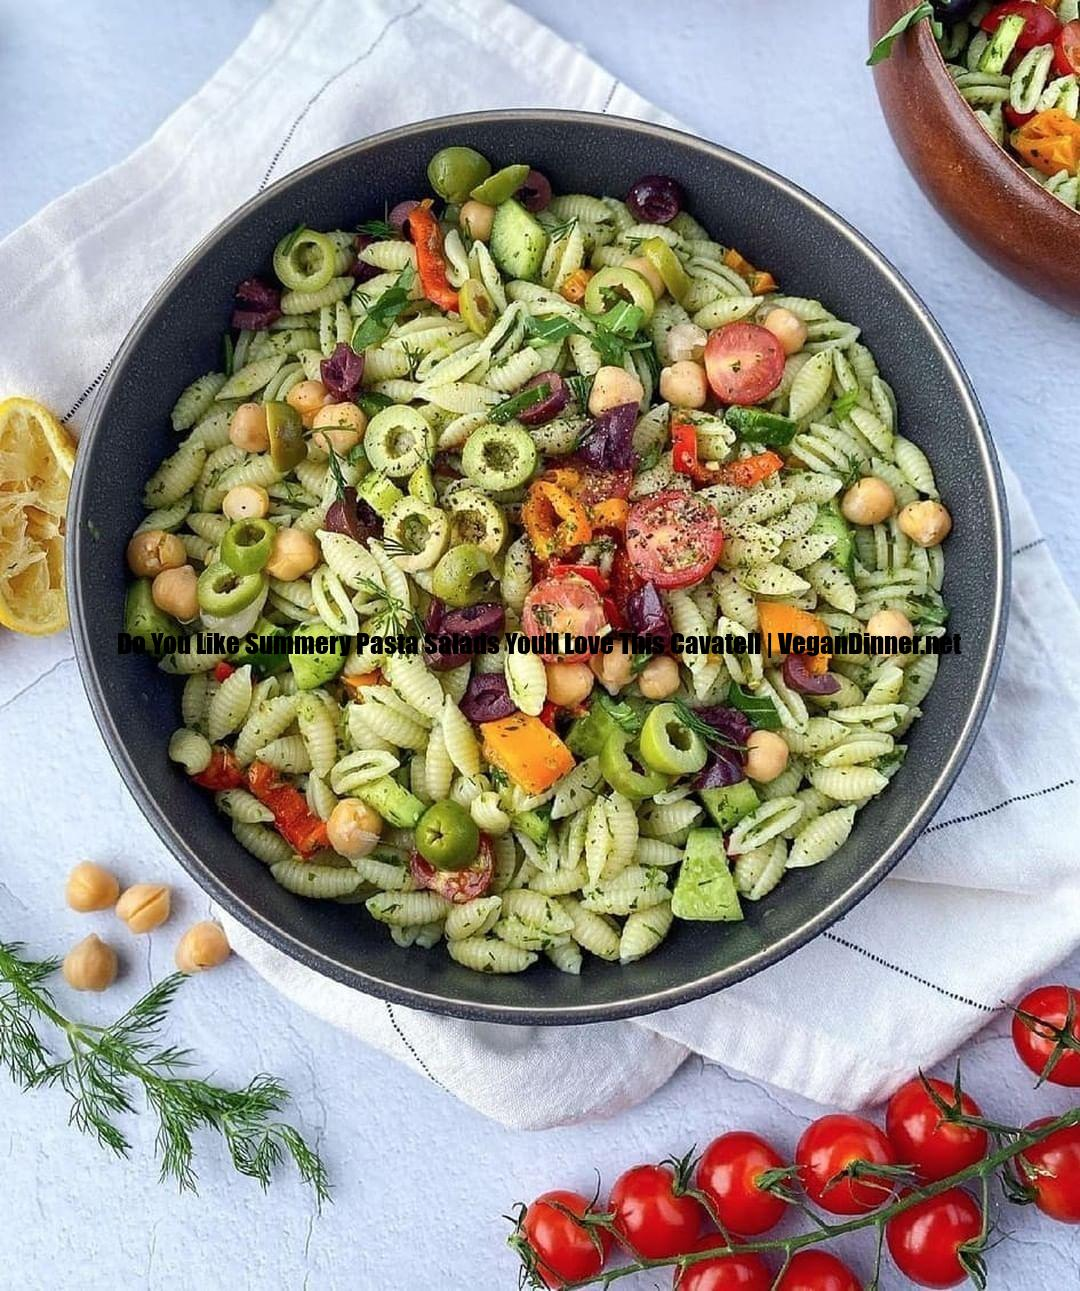 do you like summery pasta salads youll love this cavatell display image beb